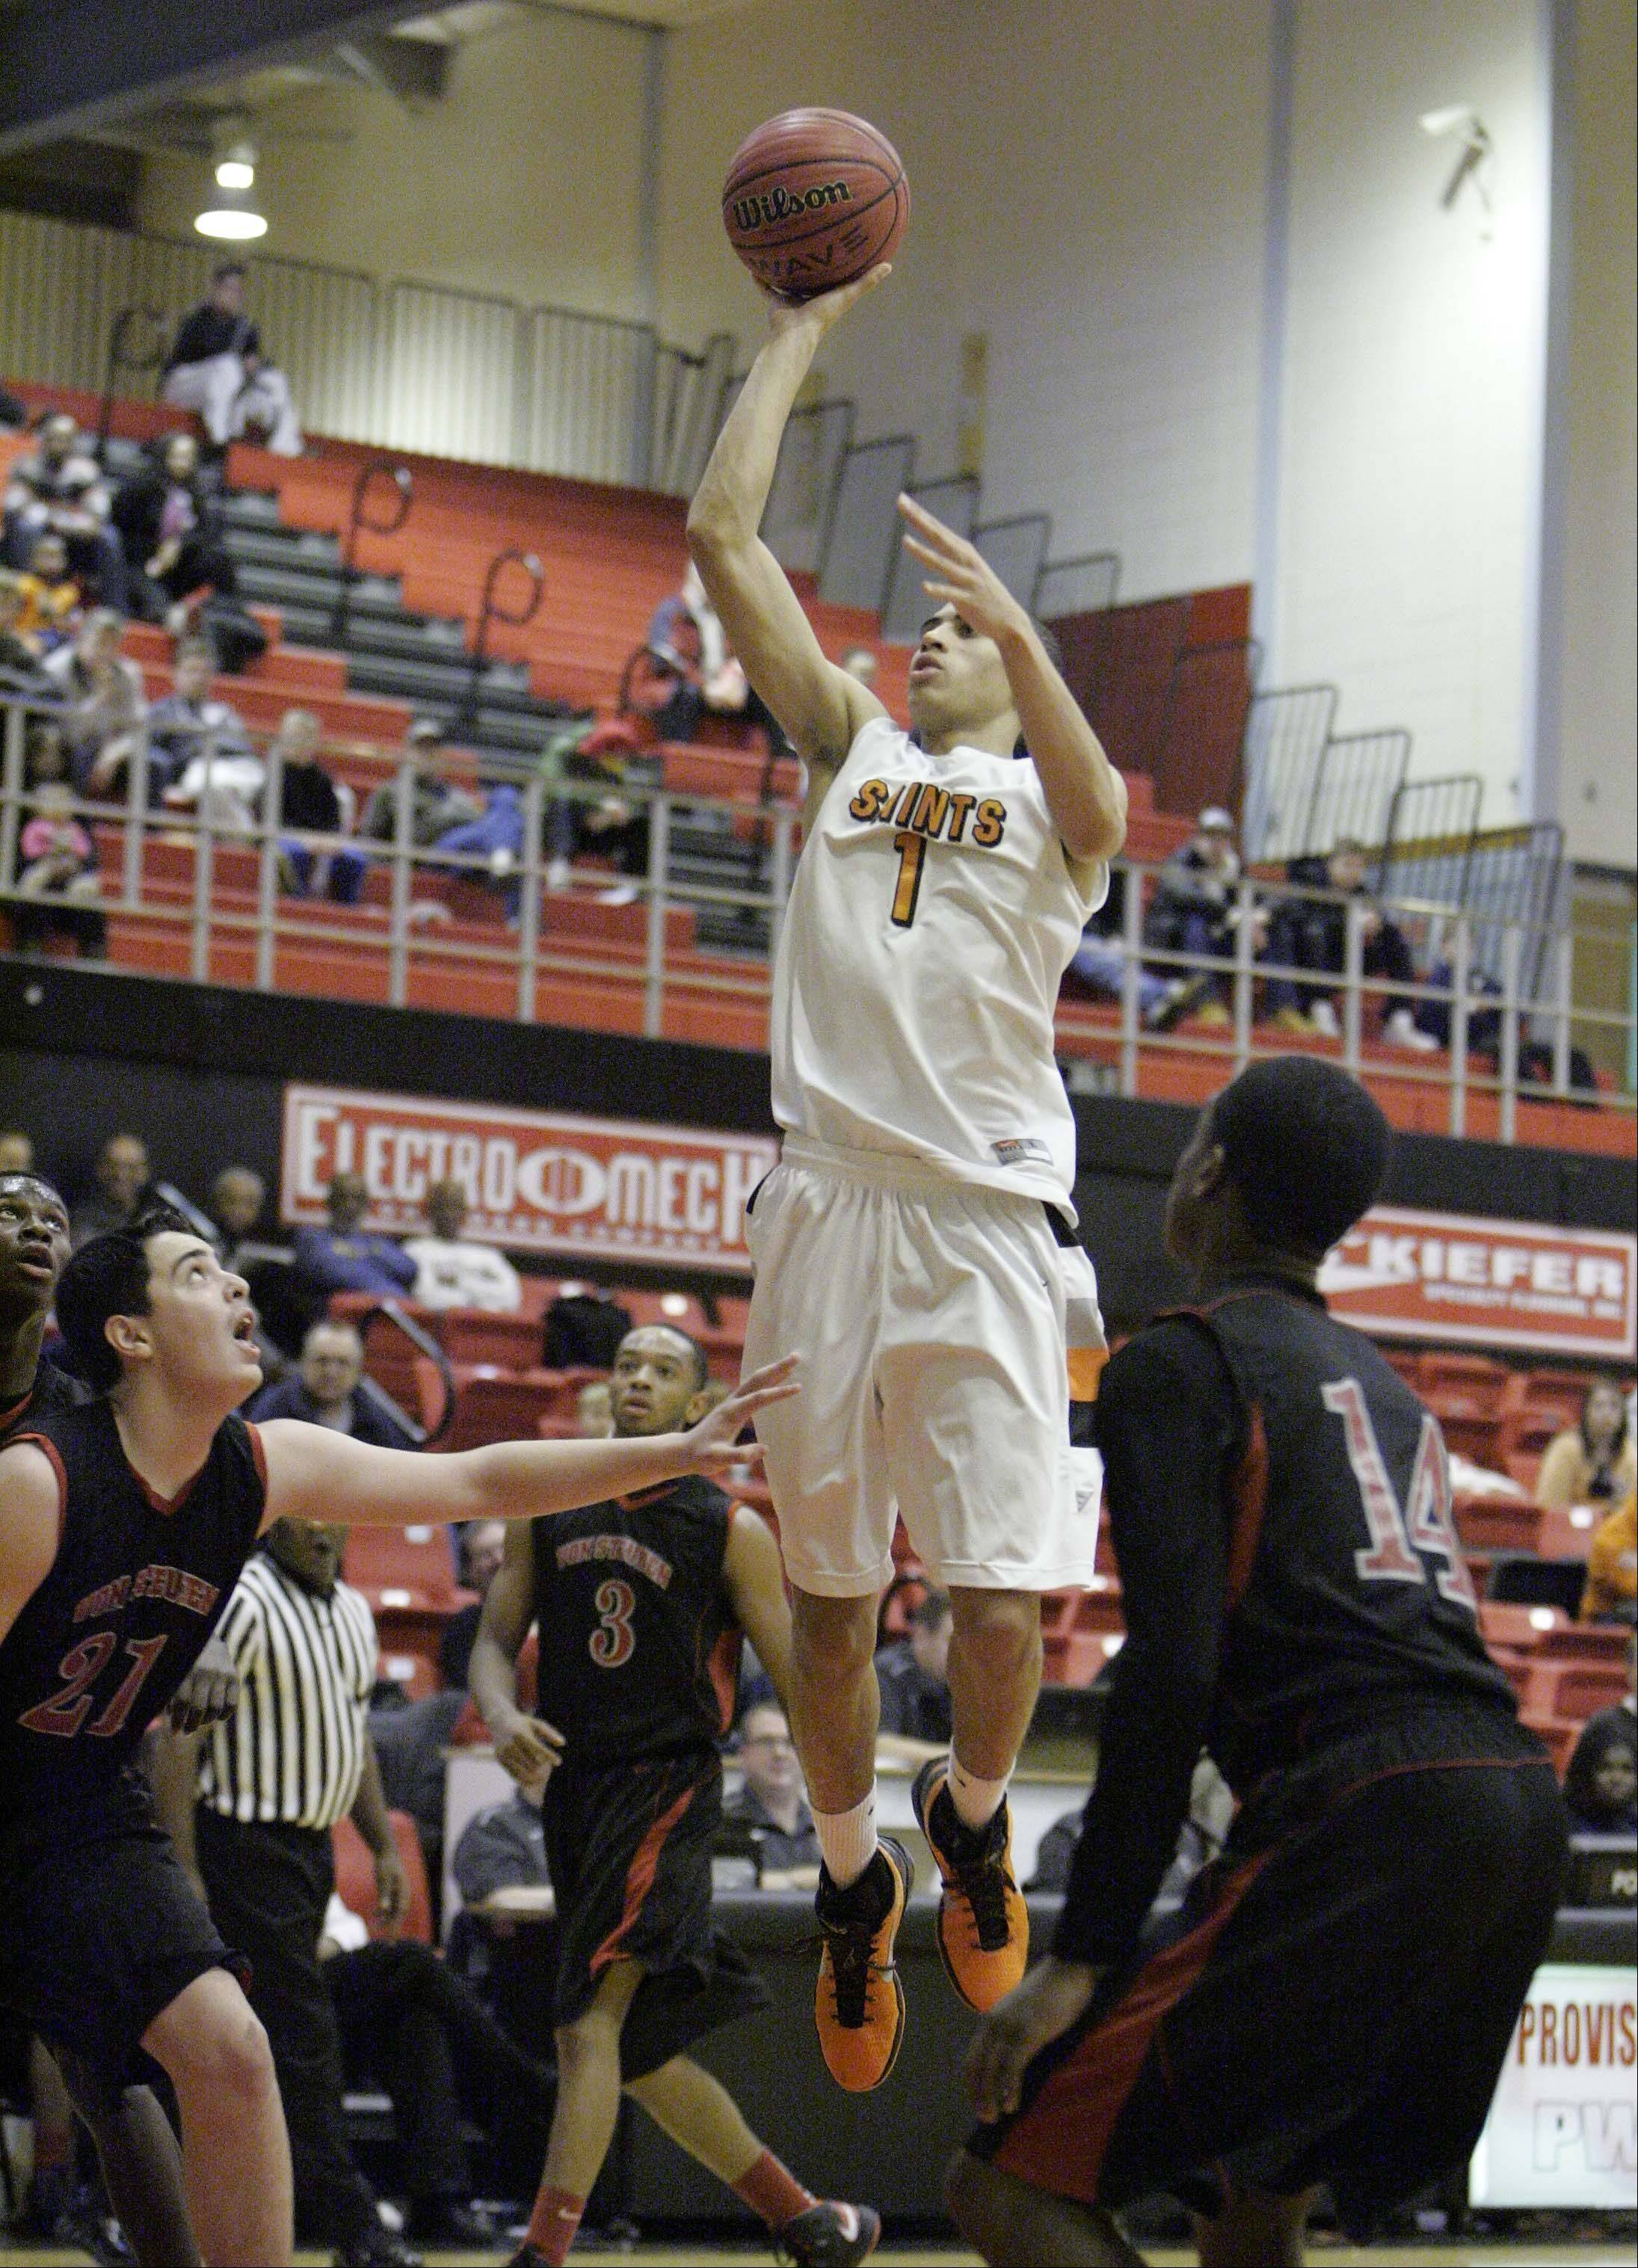 Images from St. Charles East vs Von Steuben at the Proviso West Holiday Tournament in Hillside, Wednesday December 26, 2012.